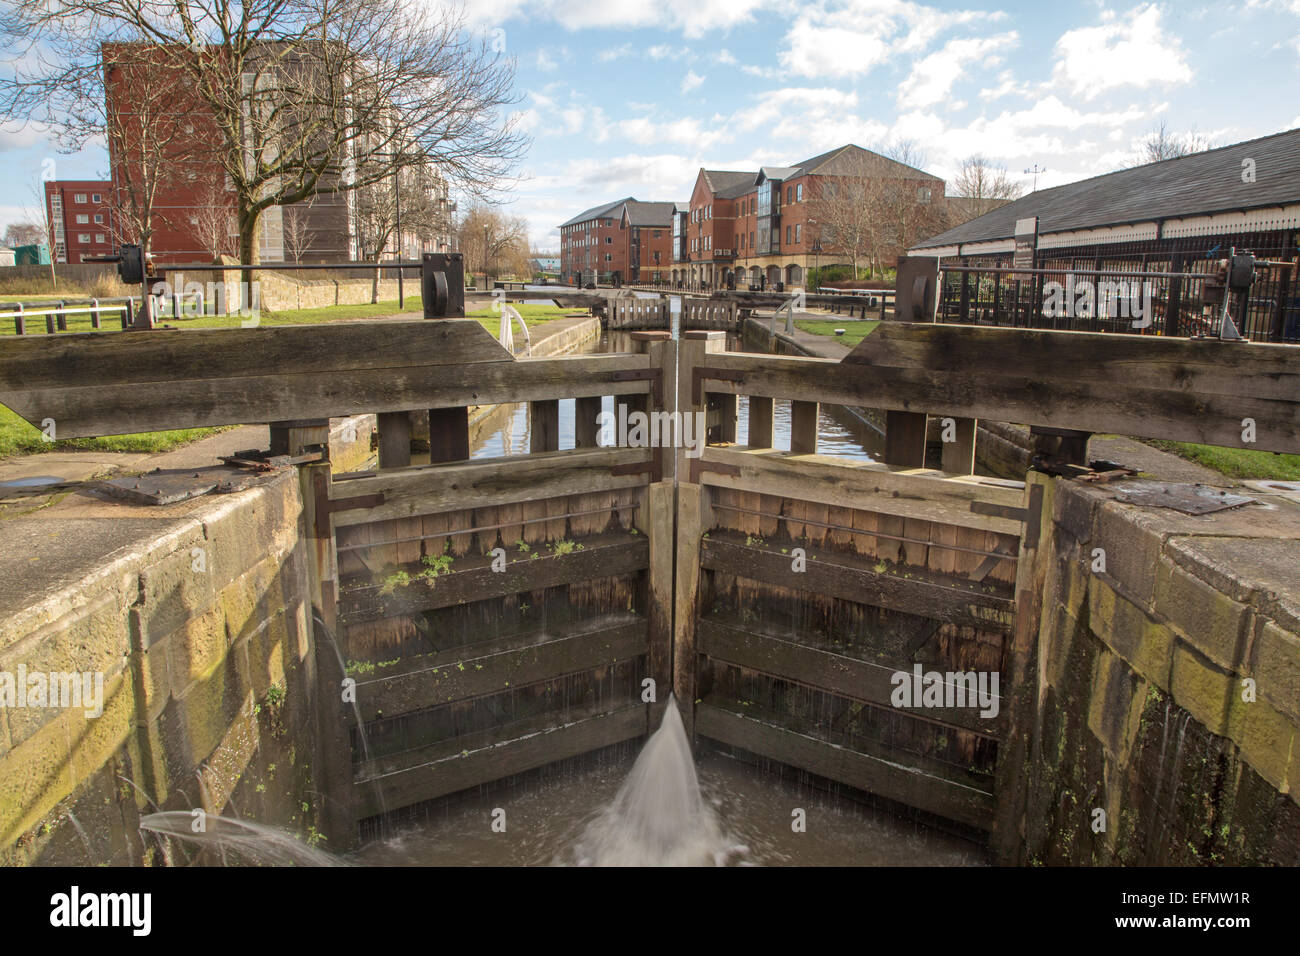 A lock on the Leeds Liverpool canal in the town of Wigan; near Wigan Pier. - Stock Image